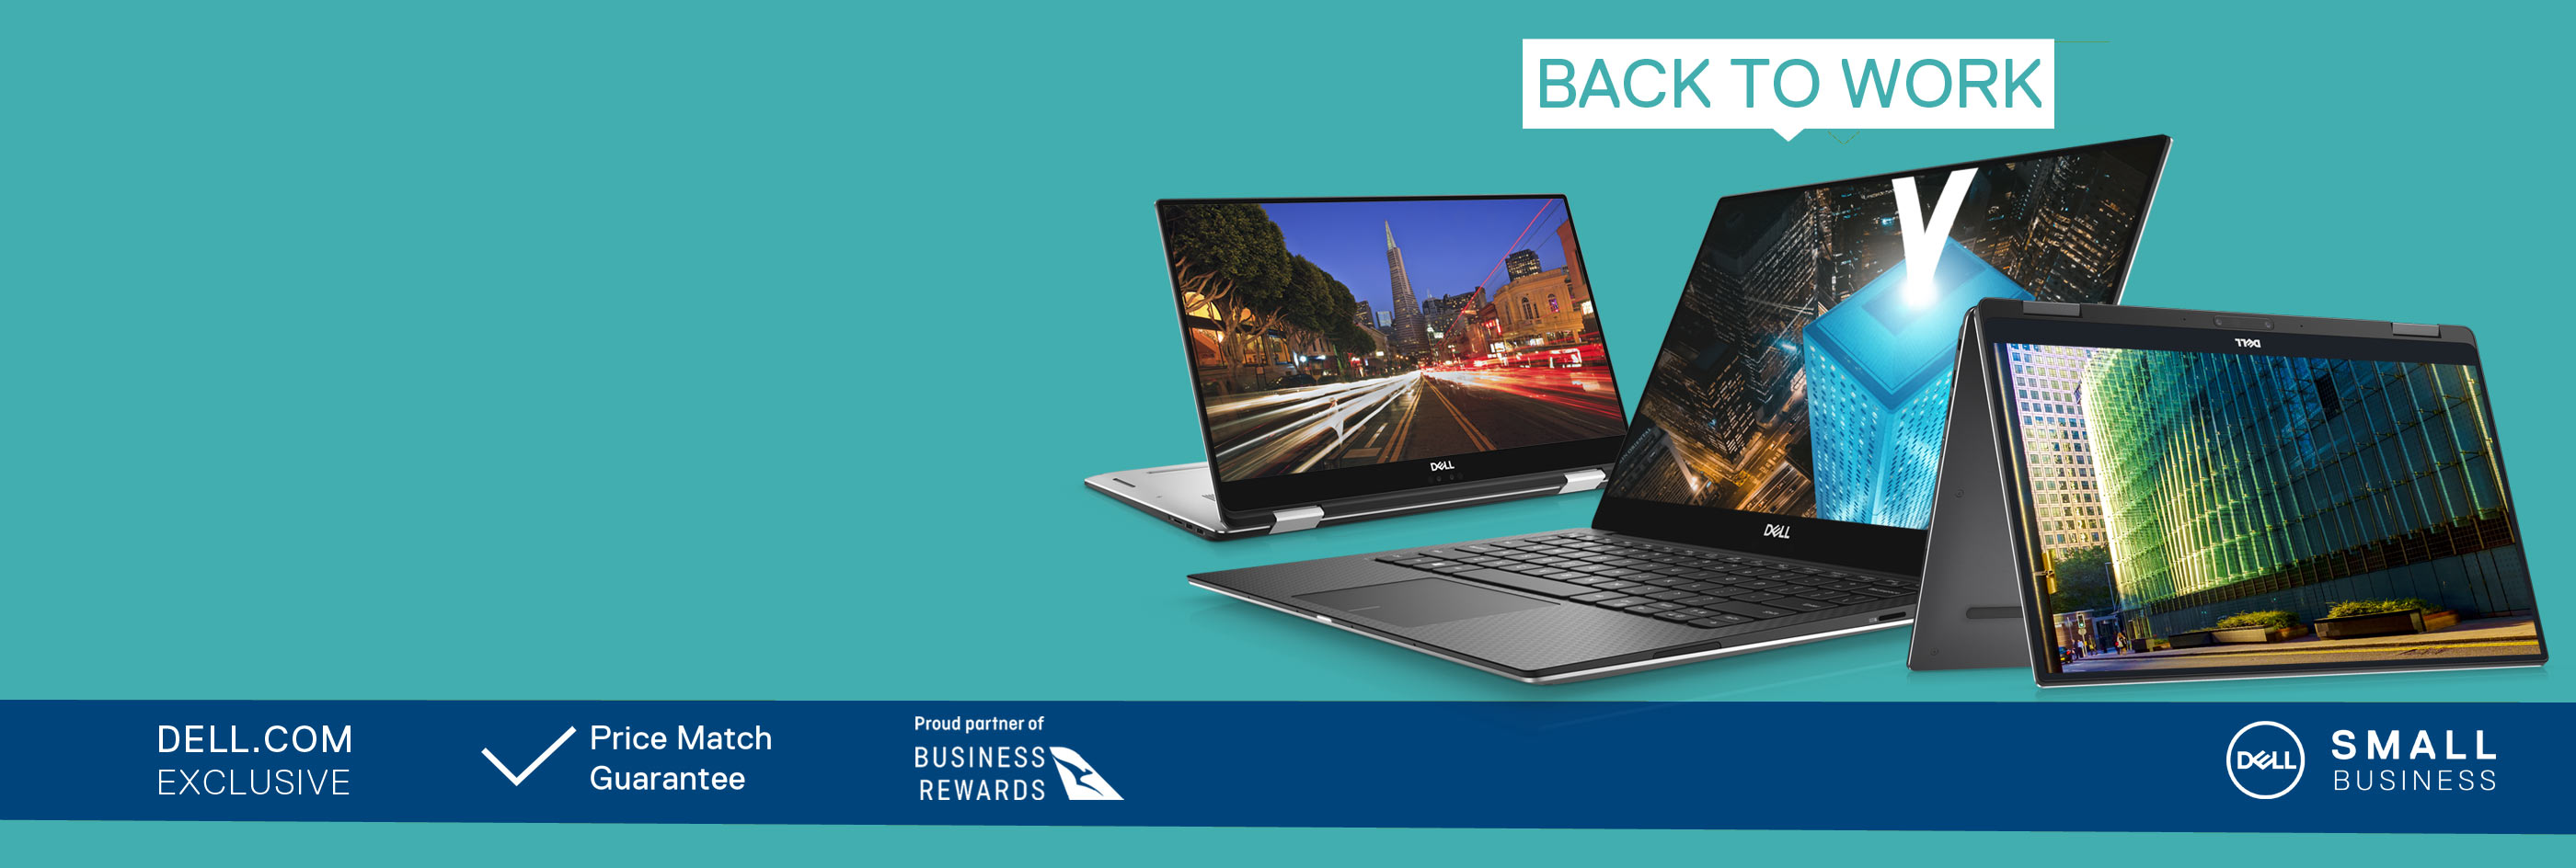 Up to 20% off selected XPS business laptops.